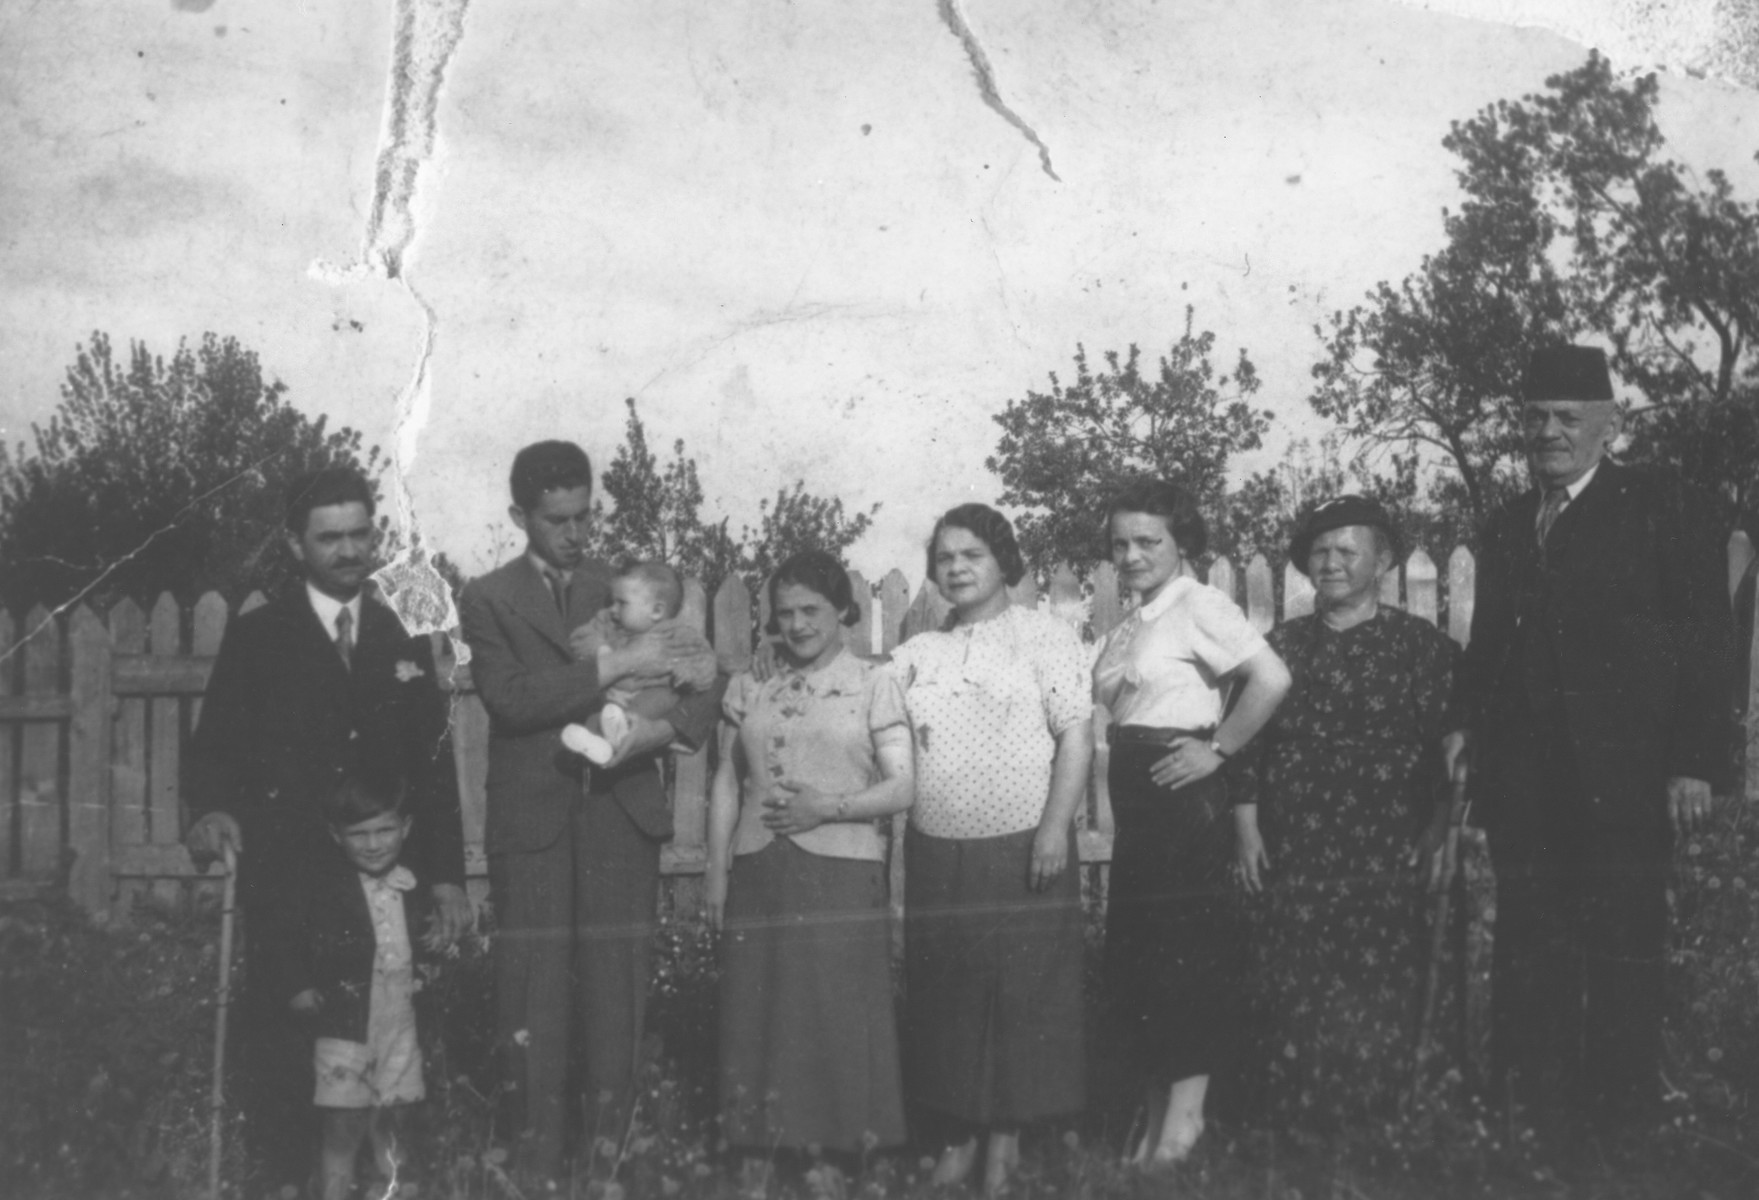 Group portrait of members of the extended Altarac family outside their home in Vlasenica, Bosnia.